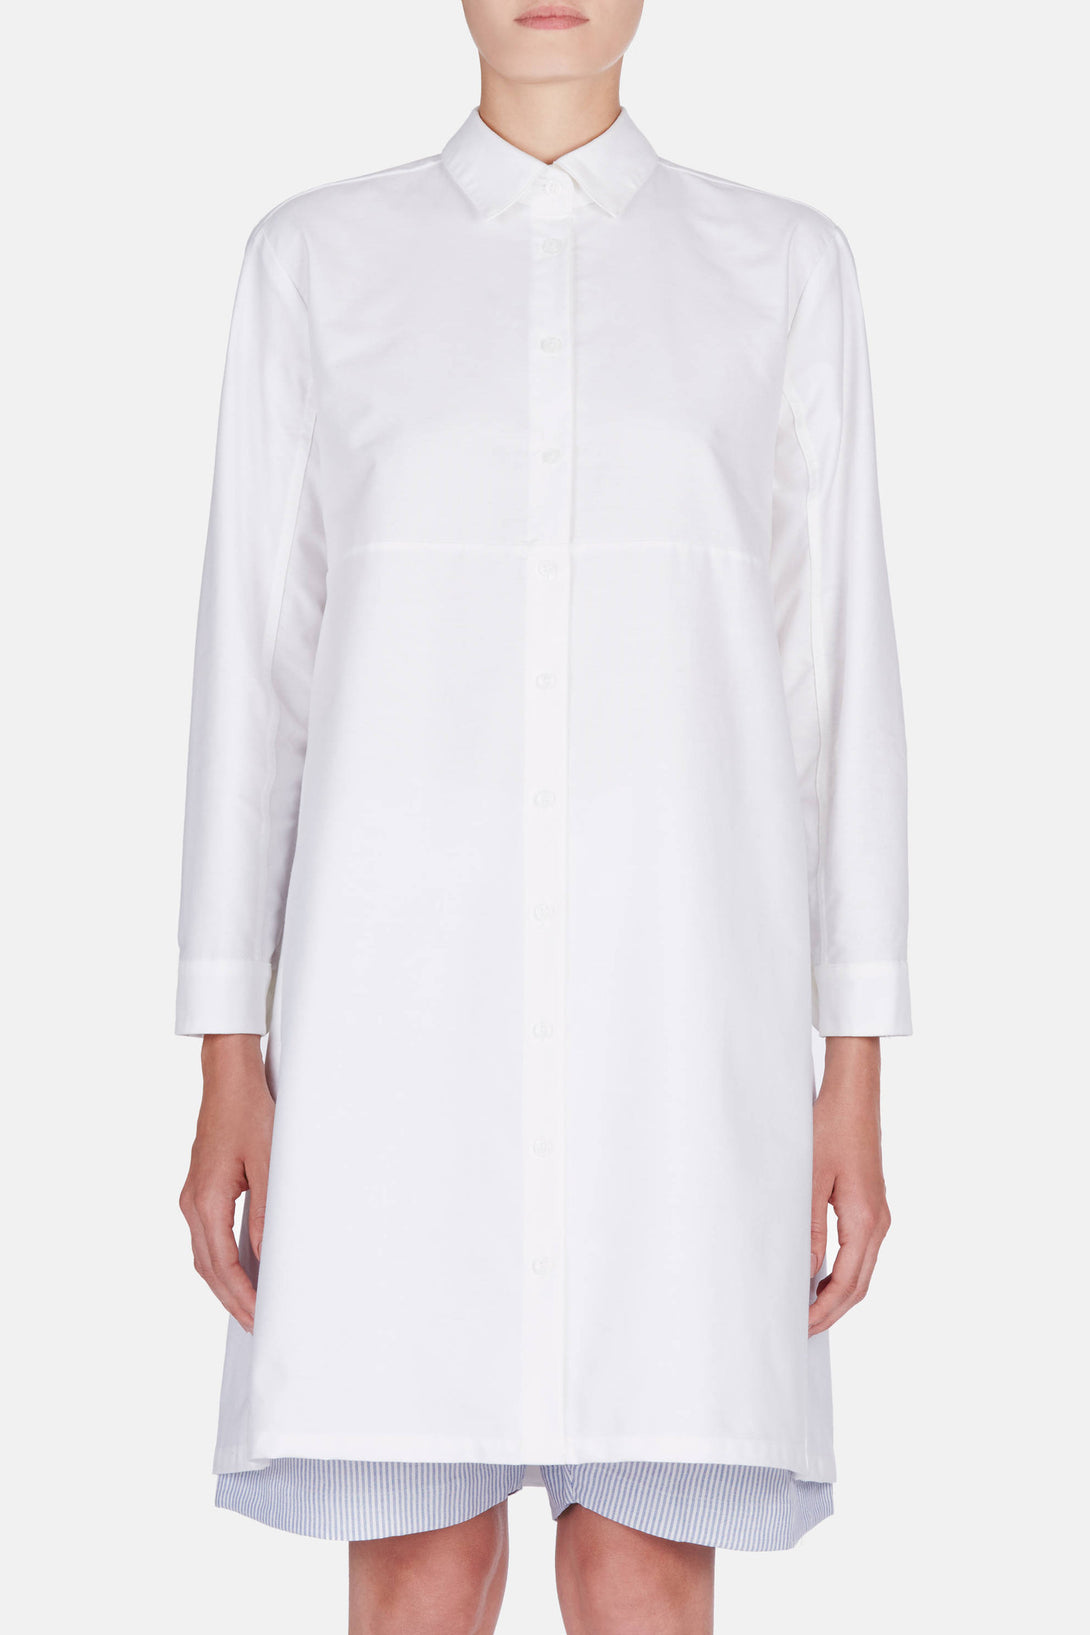 Button Down Sleep Shirt - White Oxford